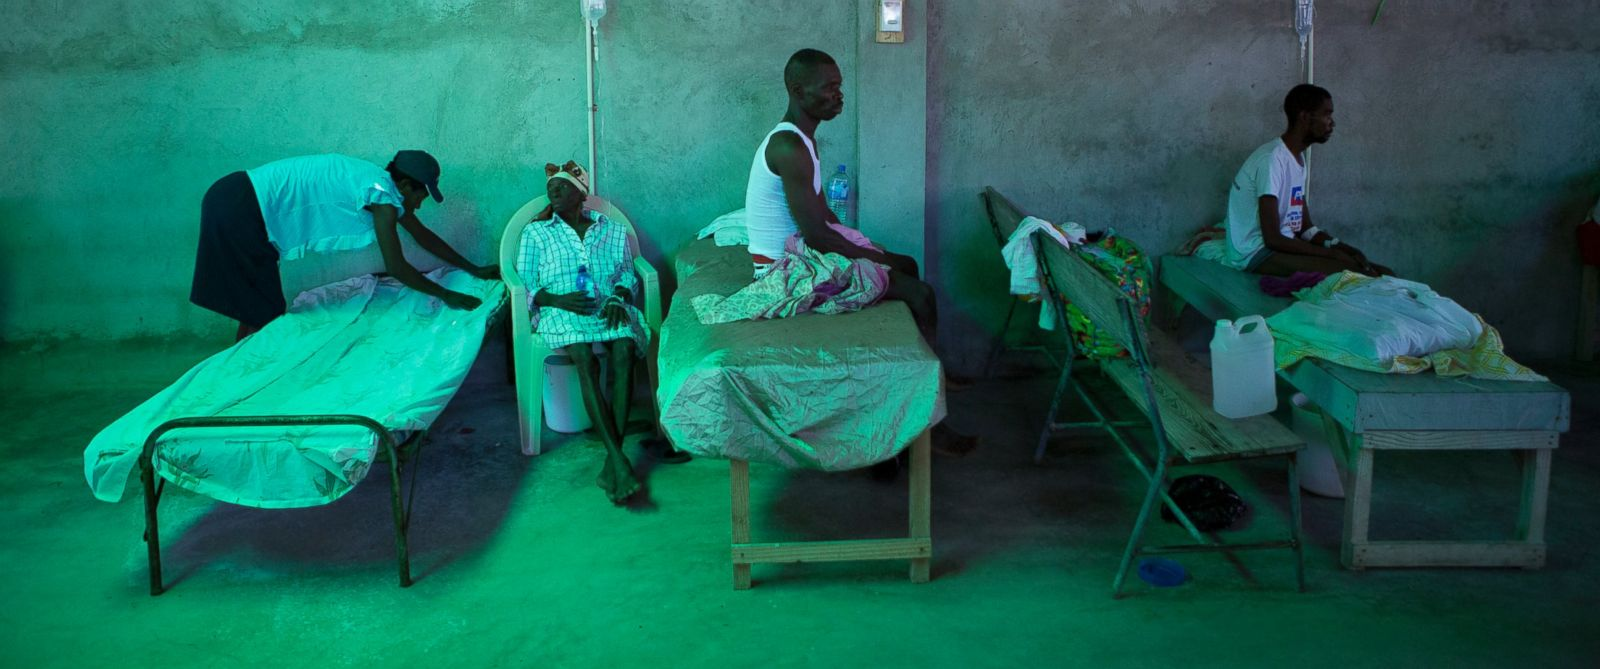 PHOTO: The daughter of 84-year-old Armant Germain replaces the sheets on her bed, in the cholera ward at a hospital in Les Cayes Haiti, on Oct. 11, 2016.